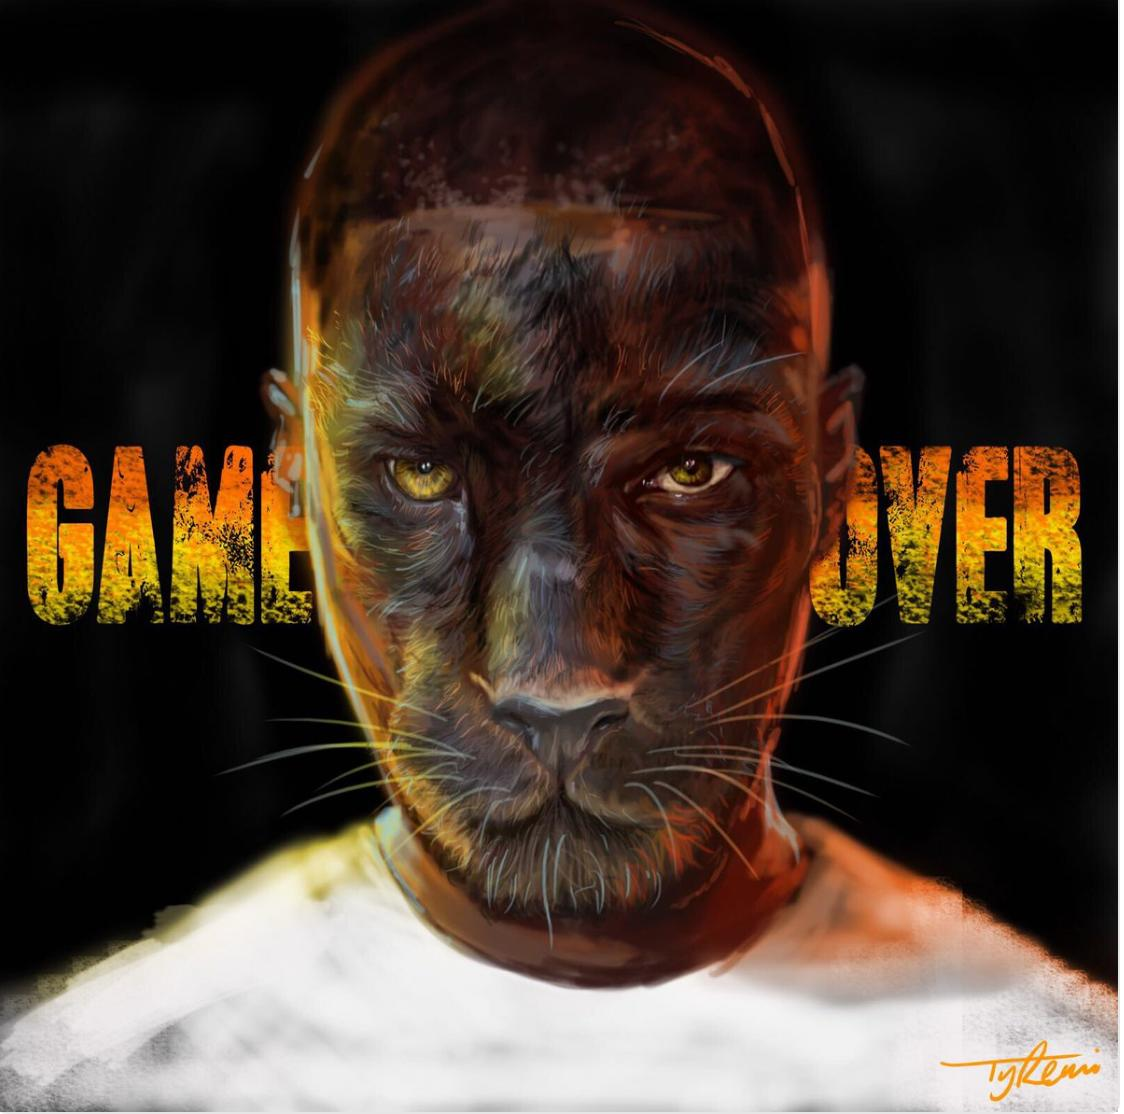 1509719324 748a4fbeccb085e014cffe300c3981dd - Dave – Game Over Ep (Zip Download)